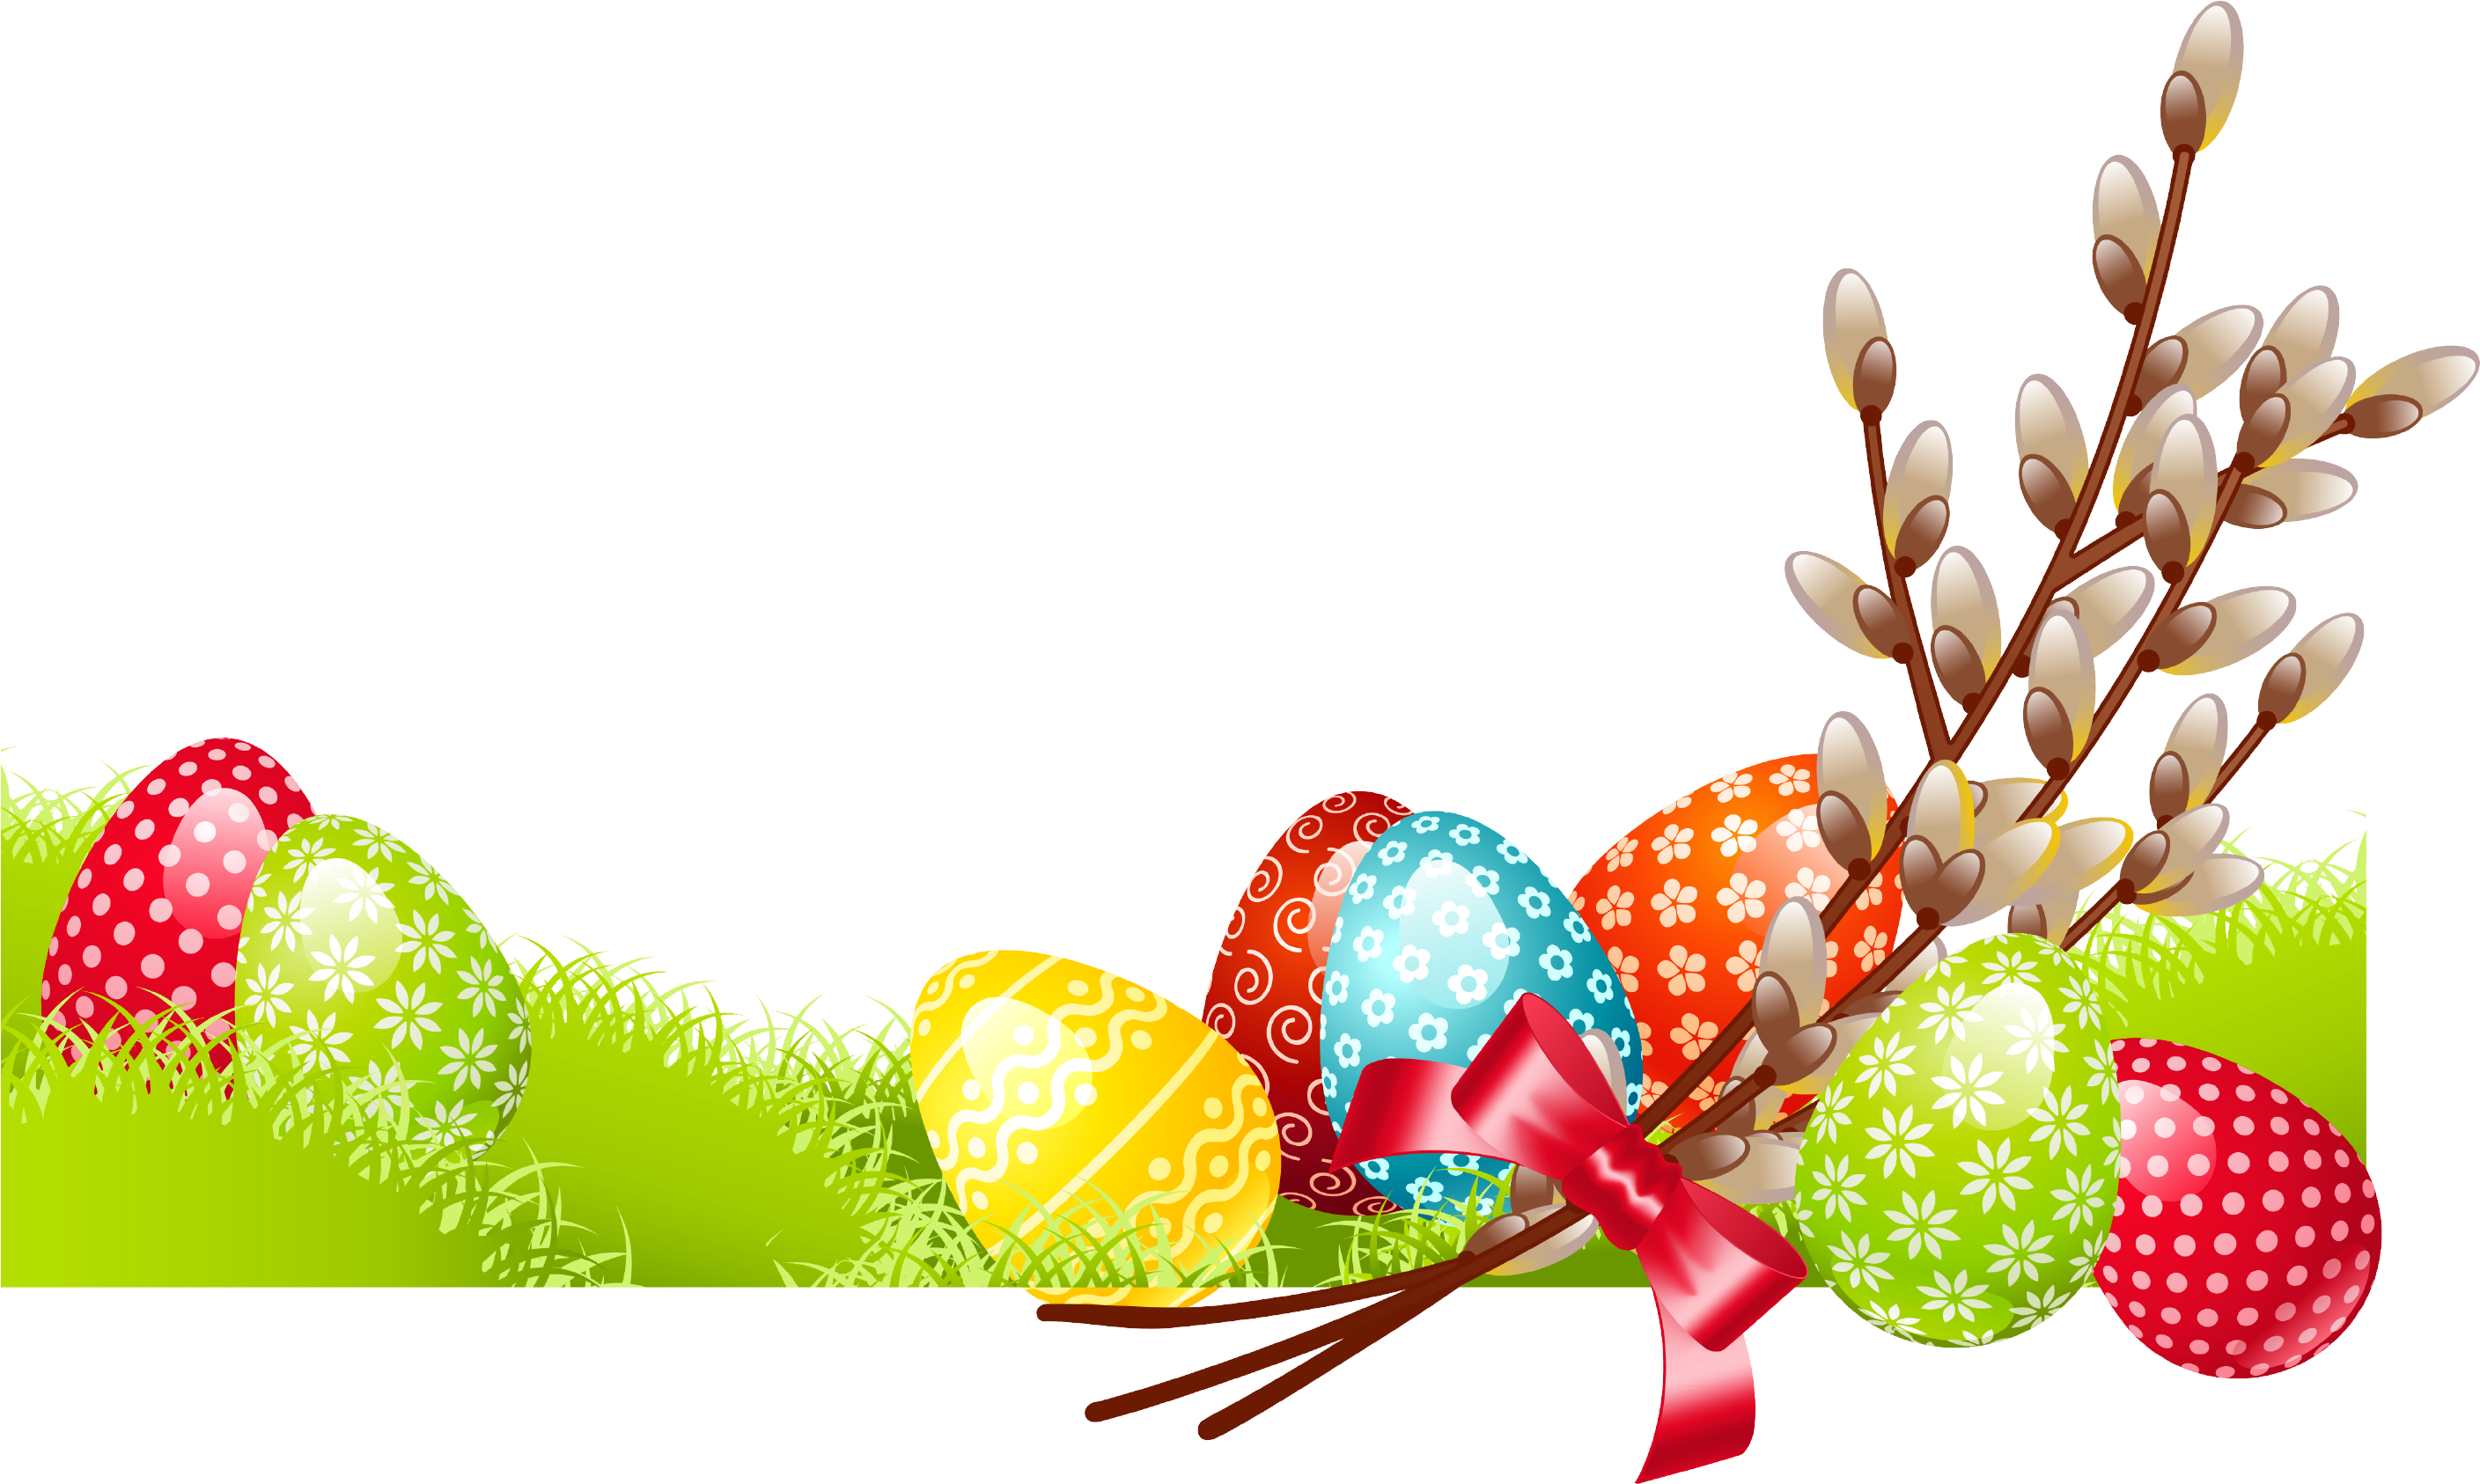 Clipart Easter Family Tree With Egg For Easter Png Transparent Png 2933x1790 Png Download Happy Easter Pictures Inspiration Happy Easter Pictures Clip Art